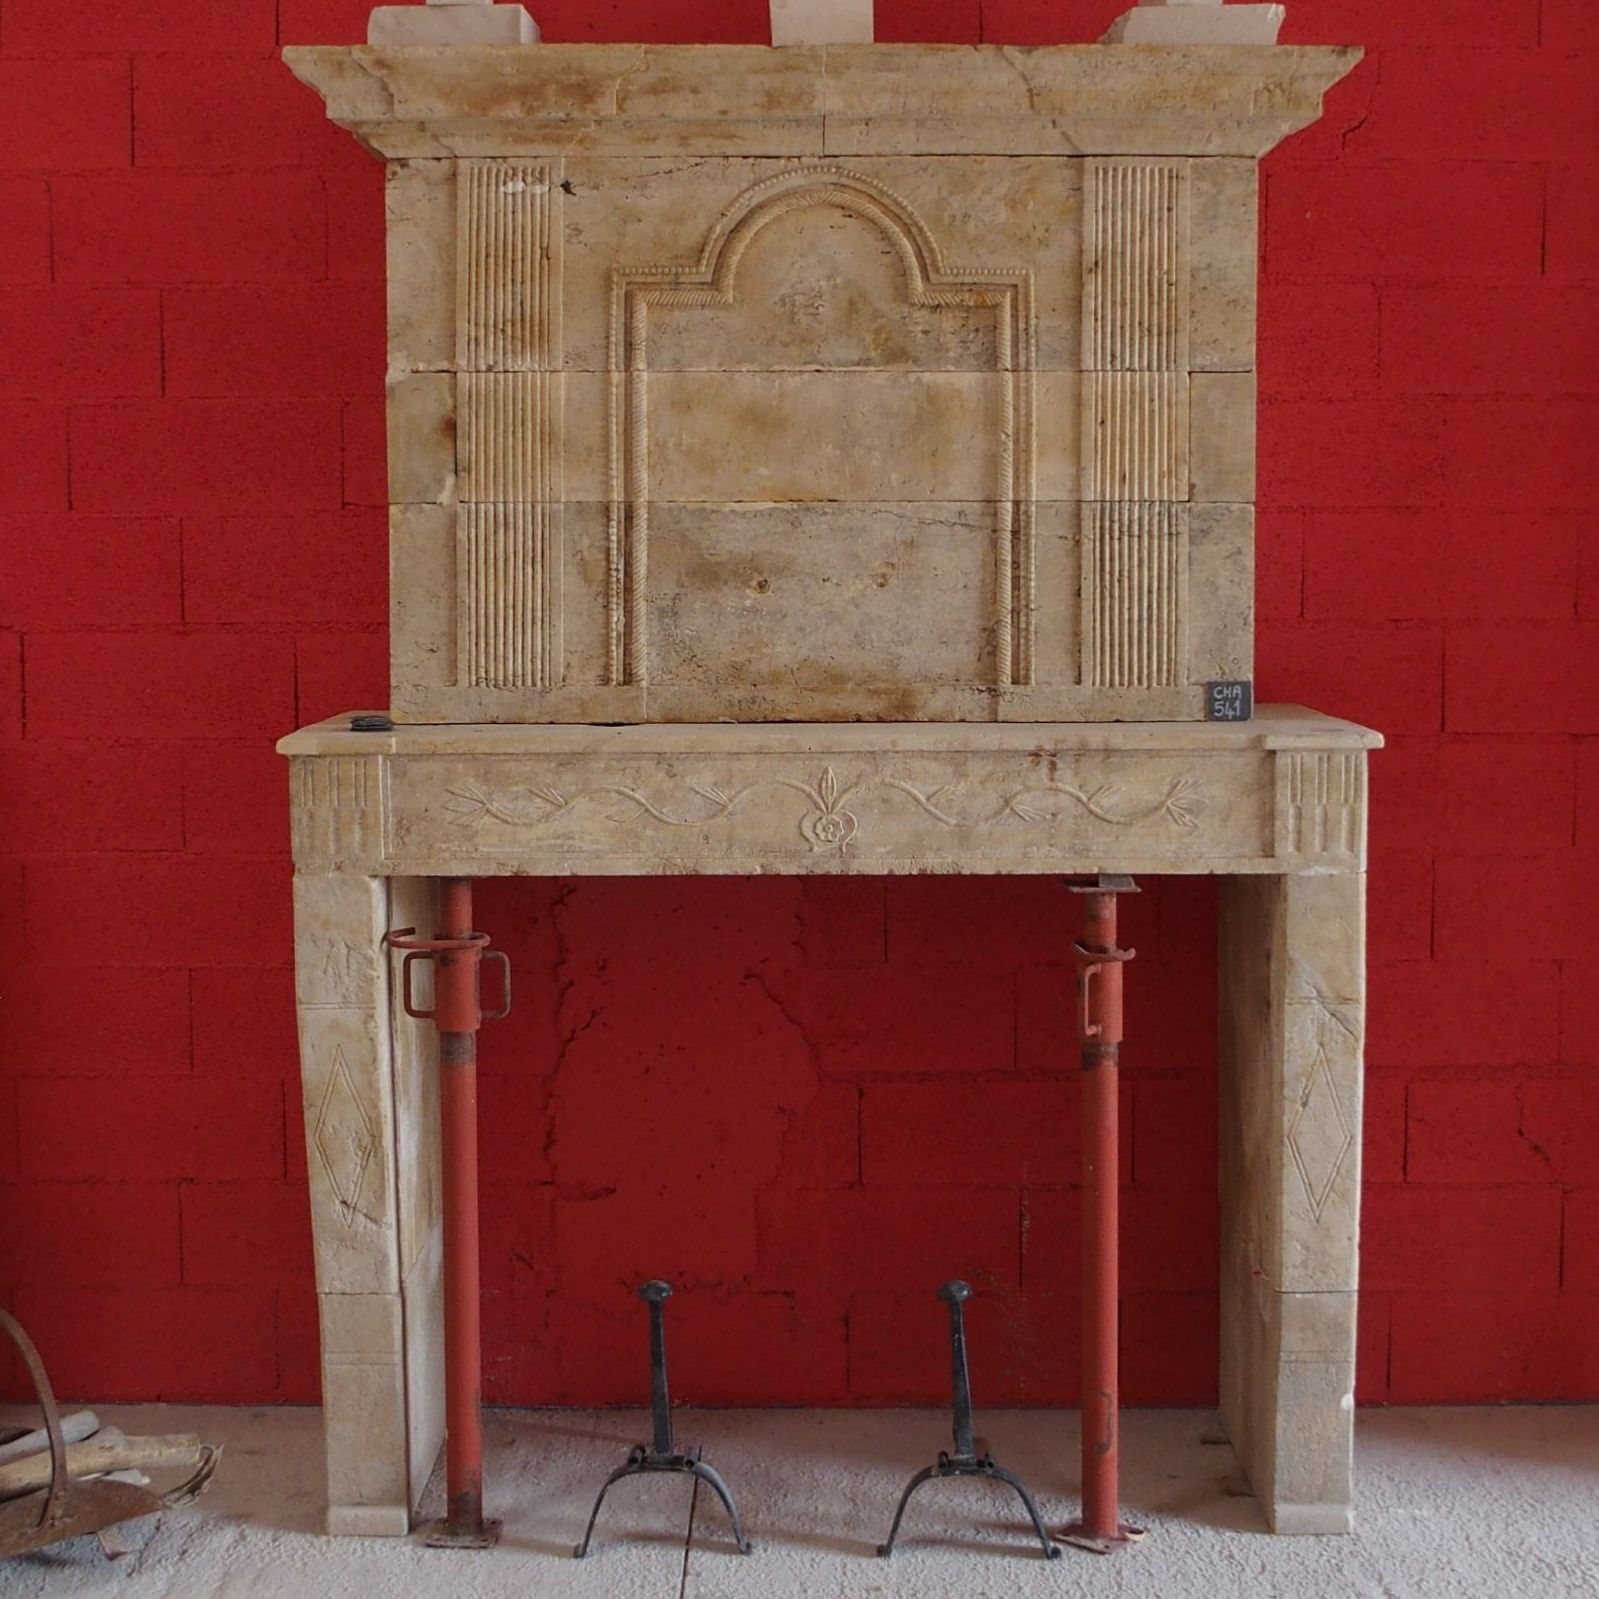 Very nice old stone fireplace - stone fireplace that has been restored.